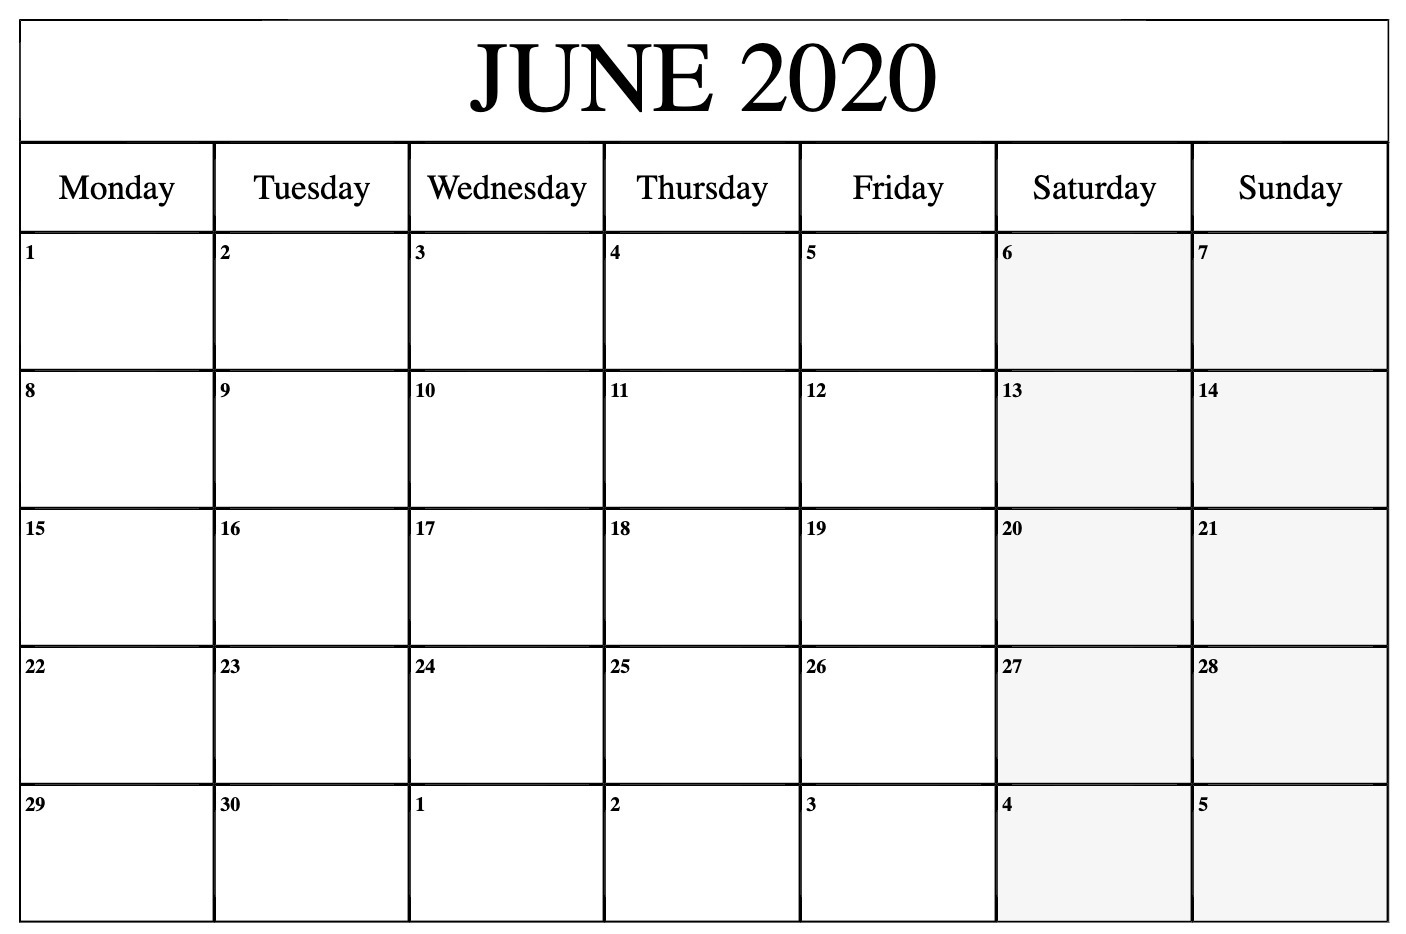 June 2020 Monthly Calendar Printable Monday